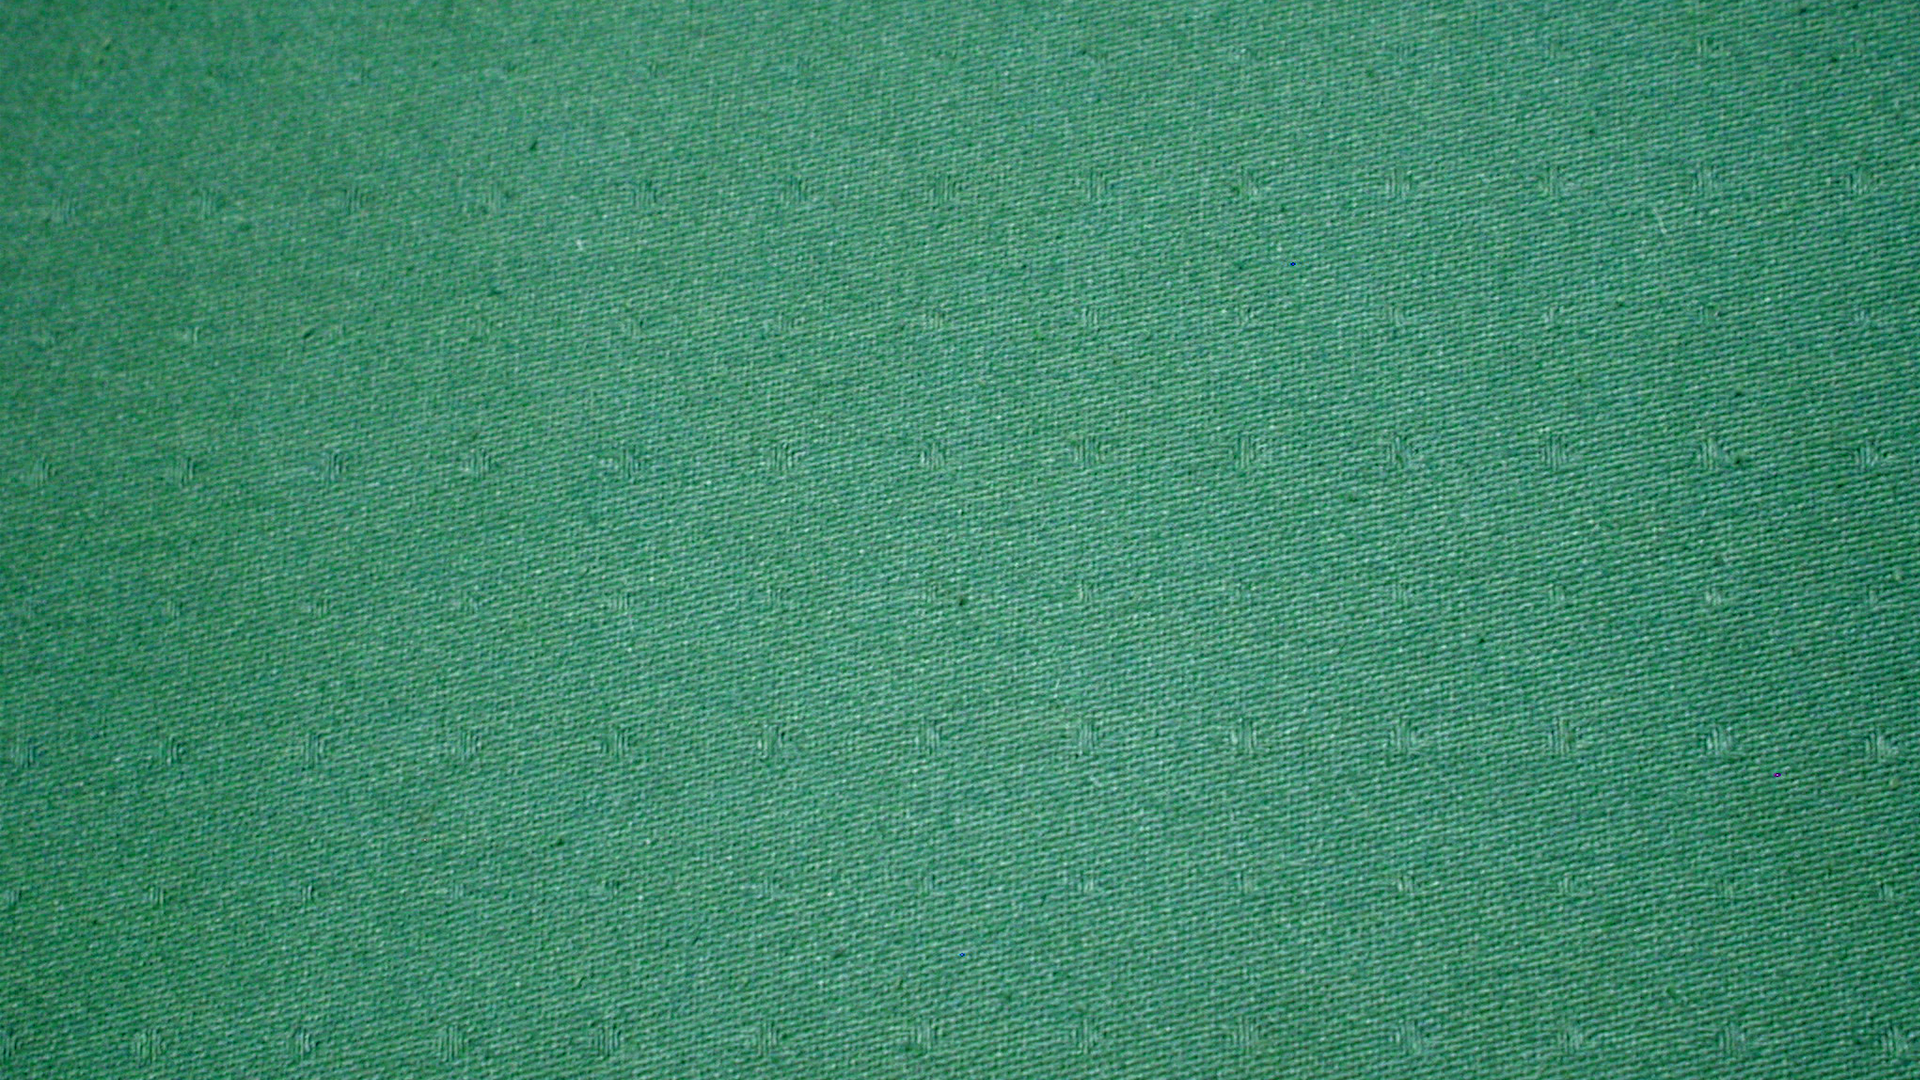 title-card-fabric-background